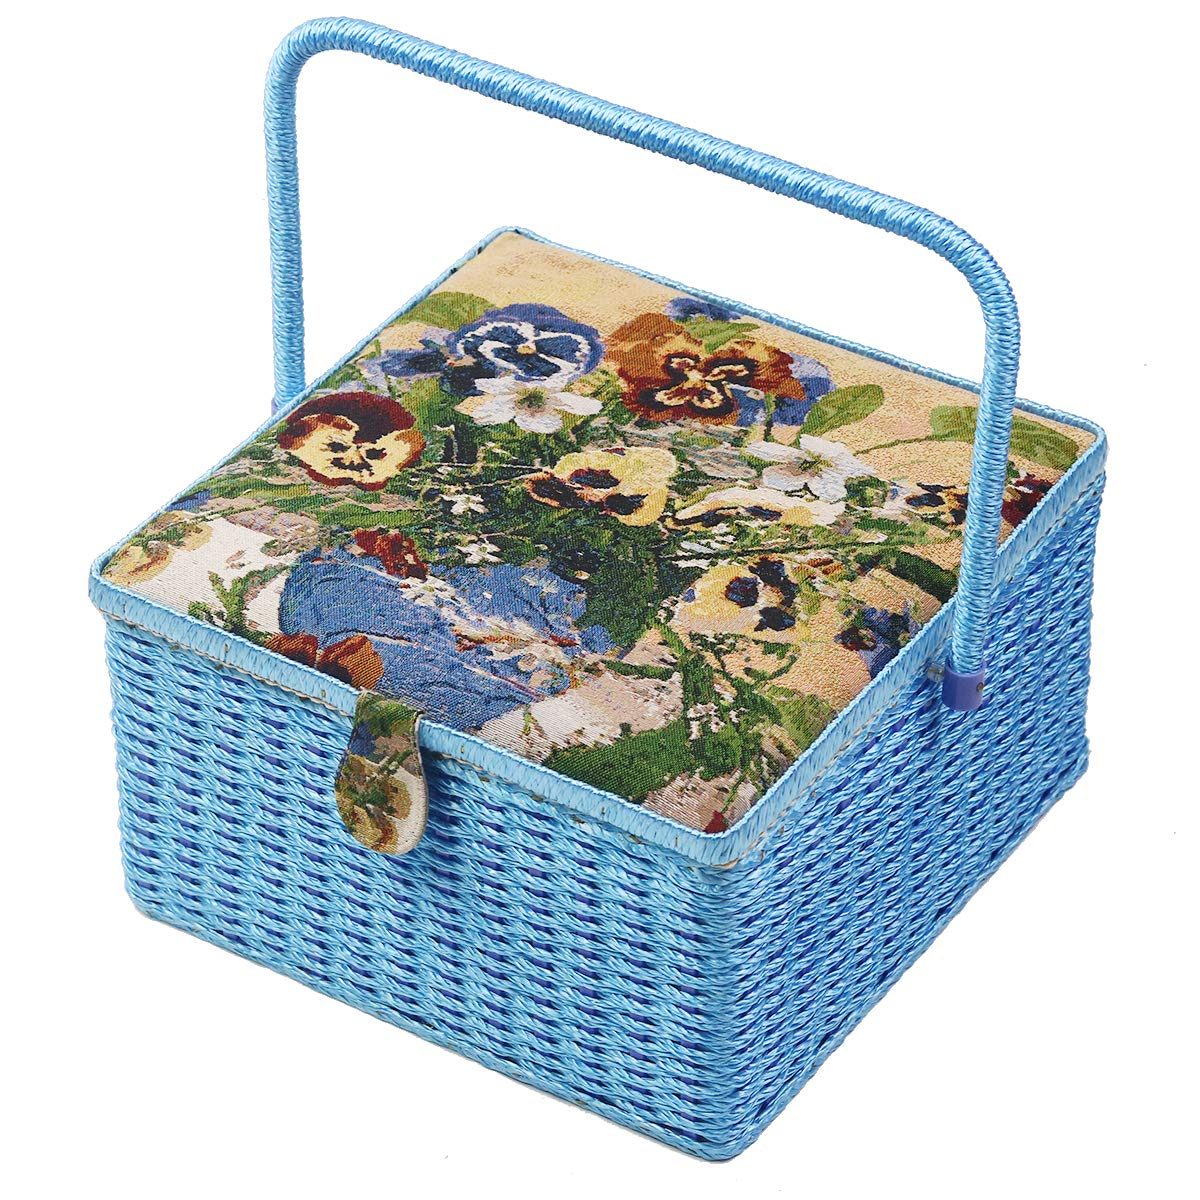 D& D Extra Large Square Sewing Basket with Sewing Kit